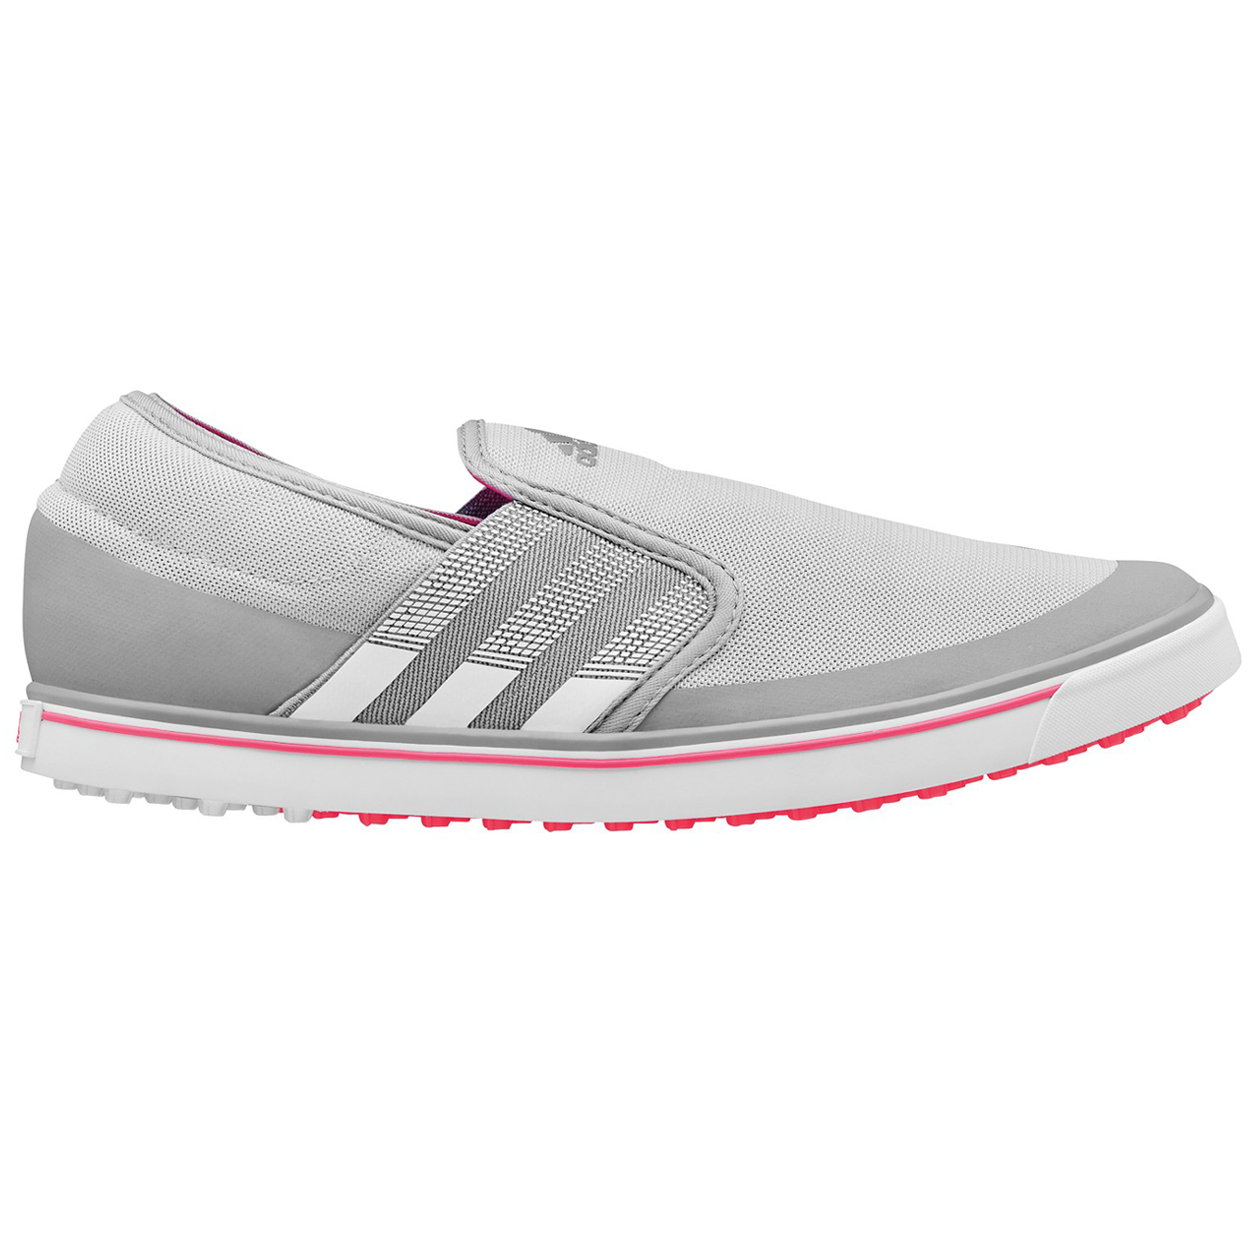 huge discount 4275c 38330 adidas womens golf shoes